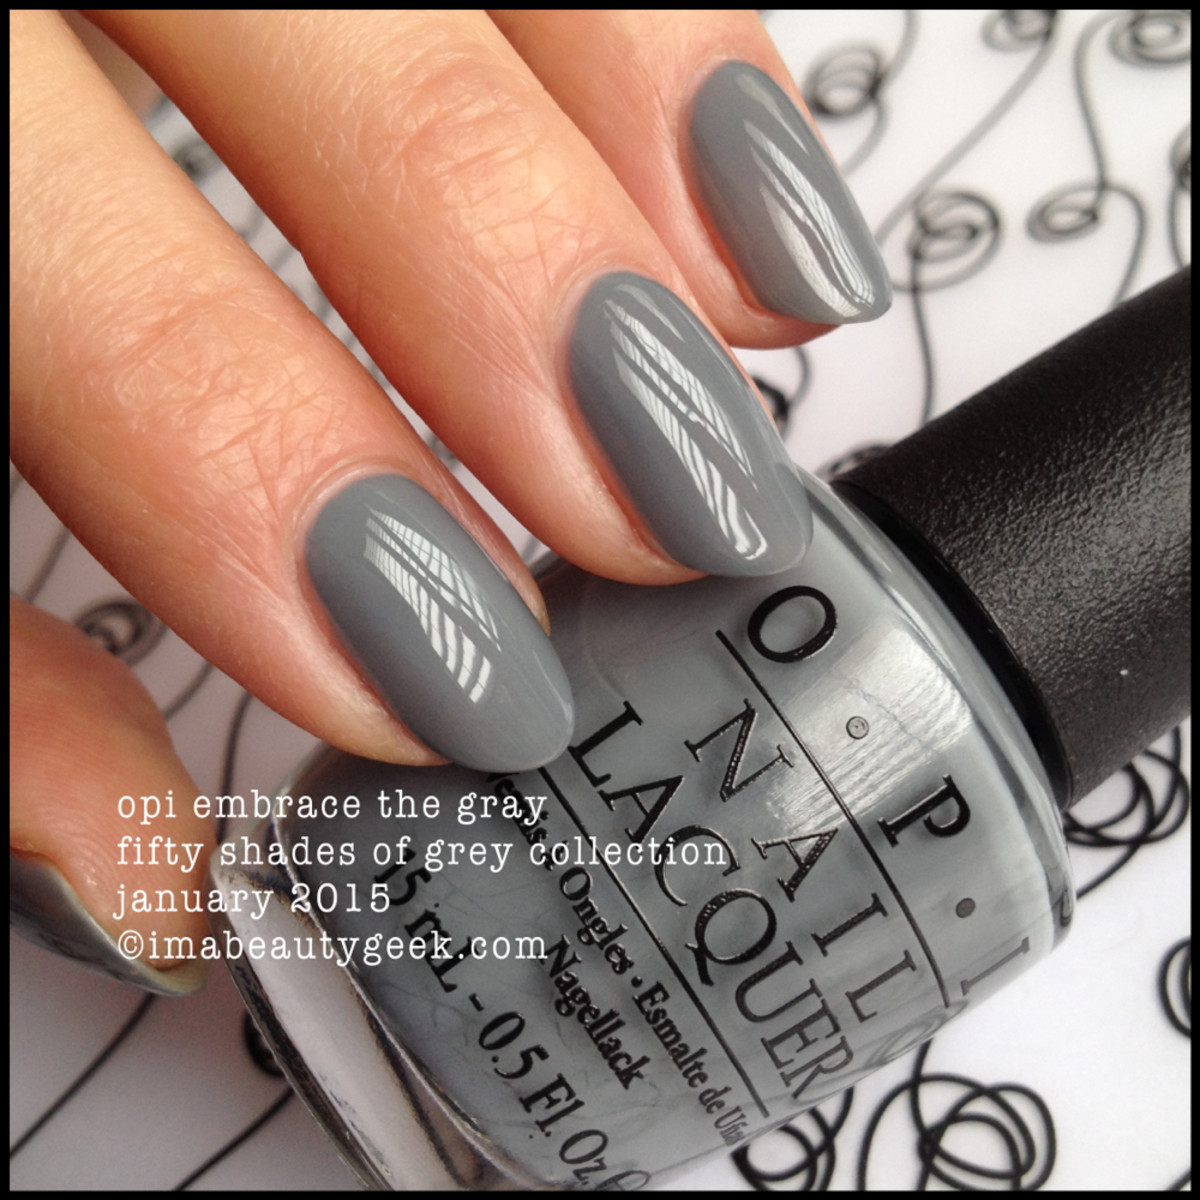 OPI Embrace the Grey